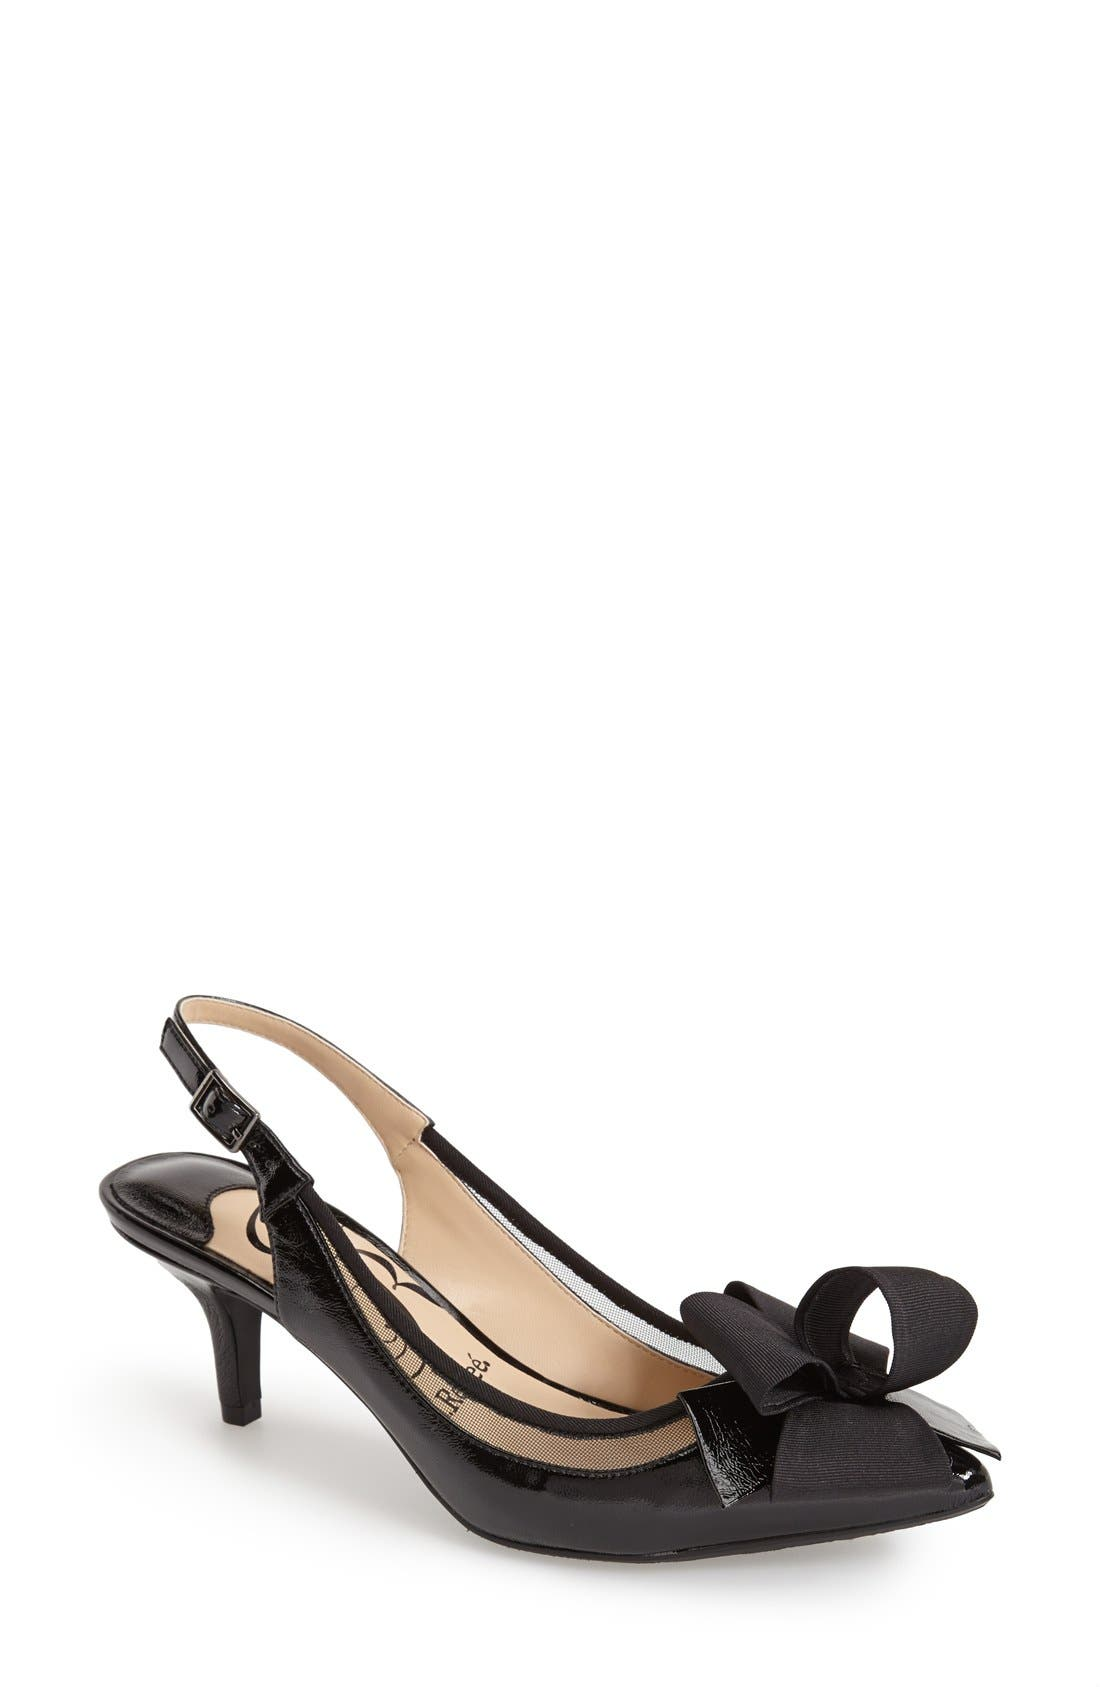 J. RENEÉ 'Garbi' Pointy Toe Bow Pump